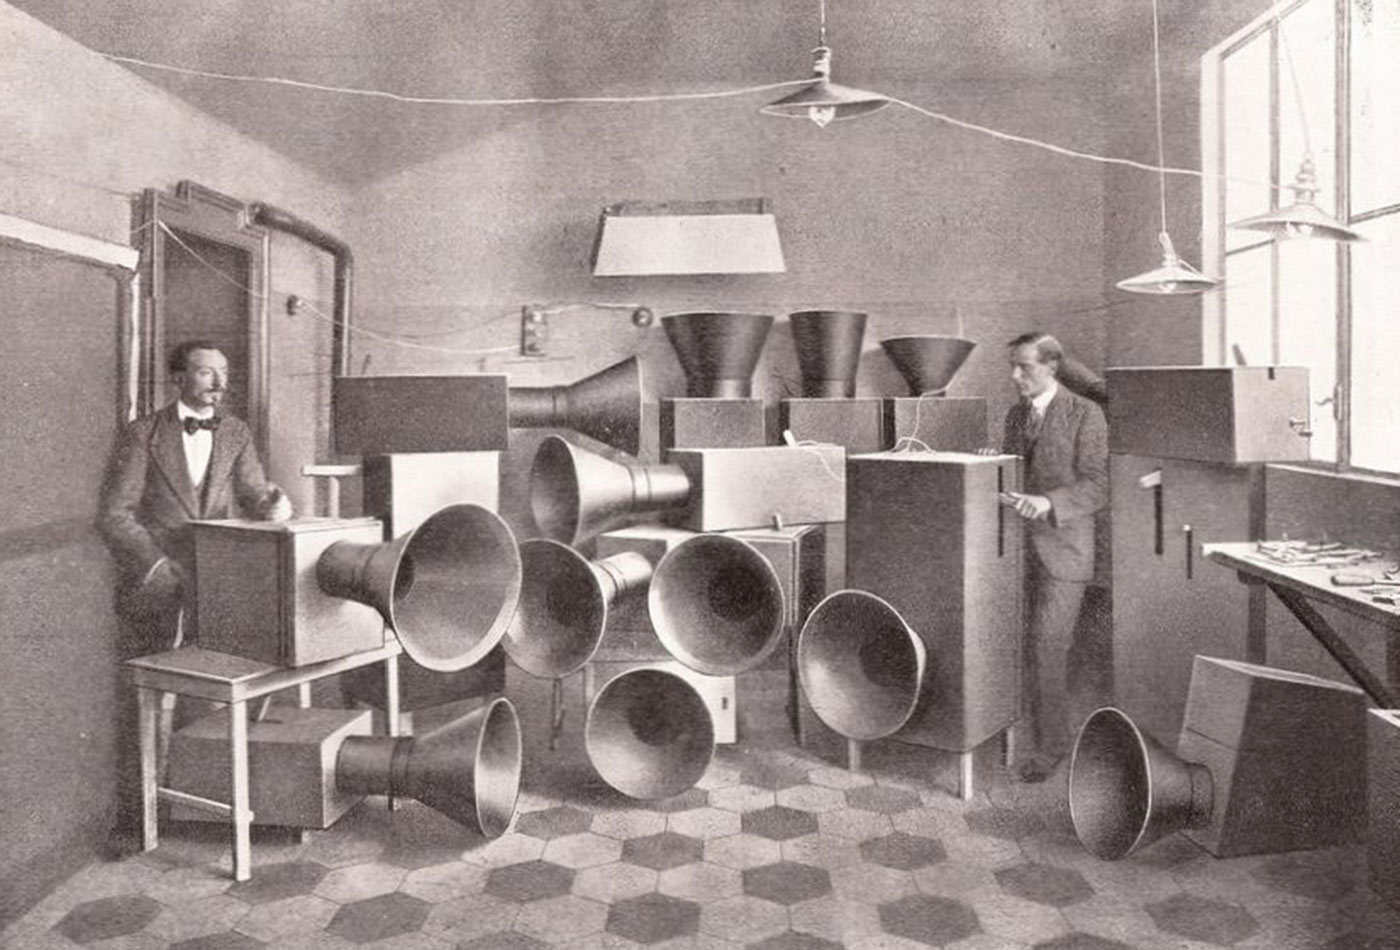 """Instruments for futuristic music, called """"Bruitism,"""" from """"The Art of Noises,"""" by Luigi Russolo, 1913"""